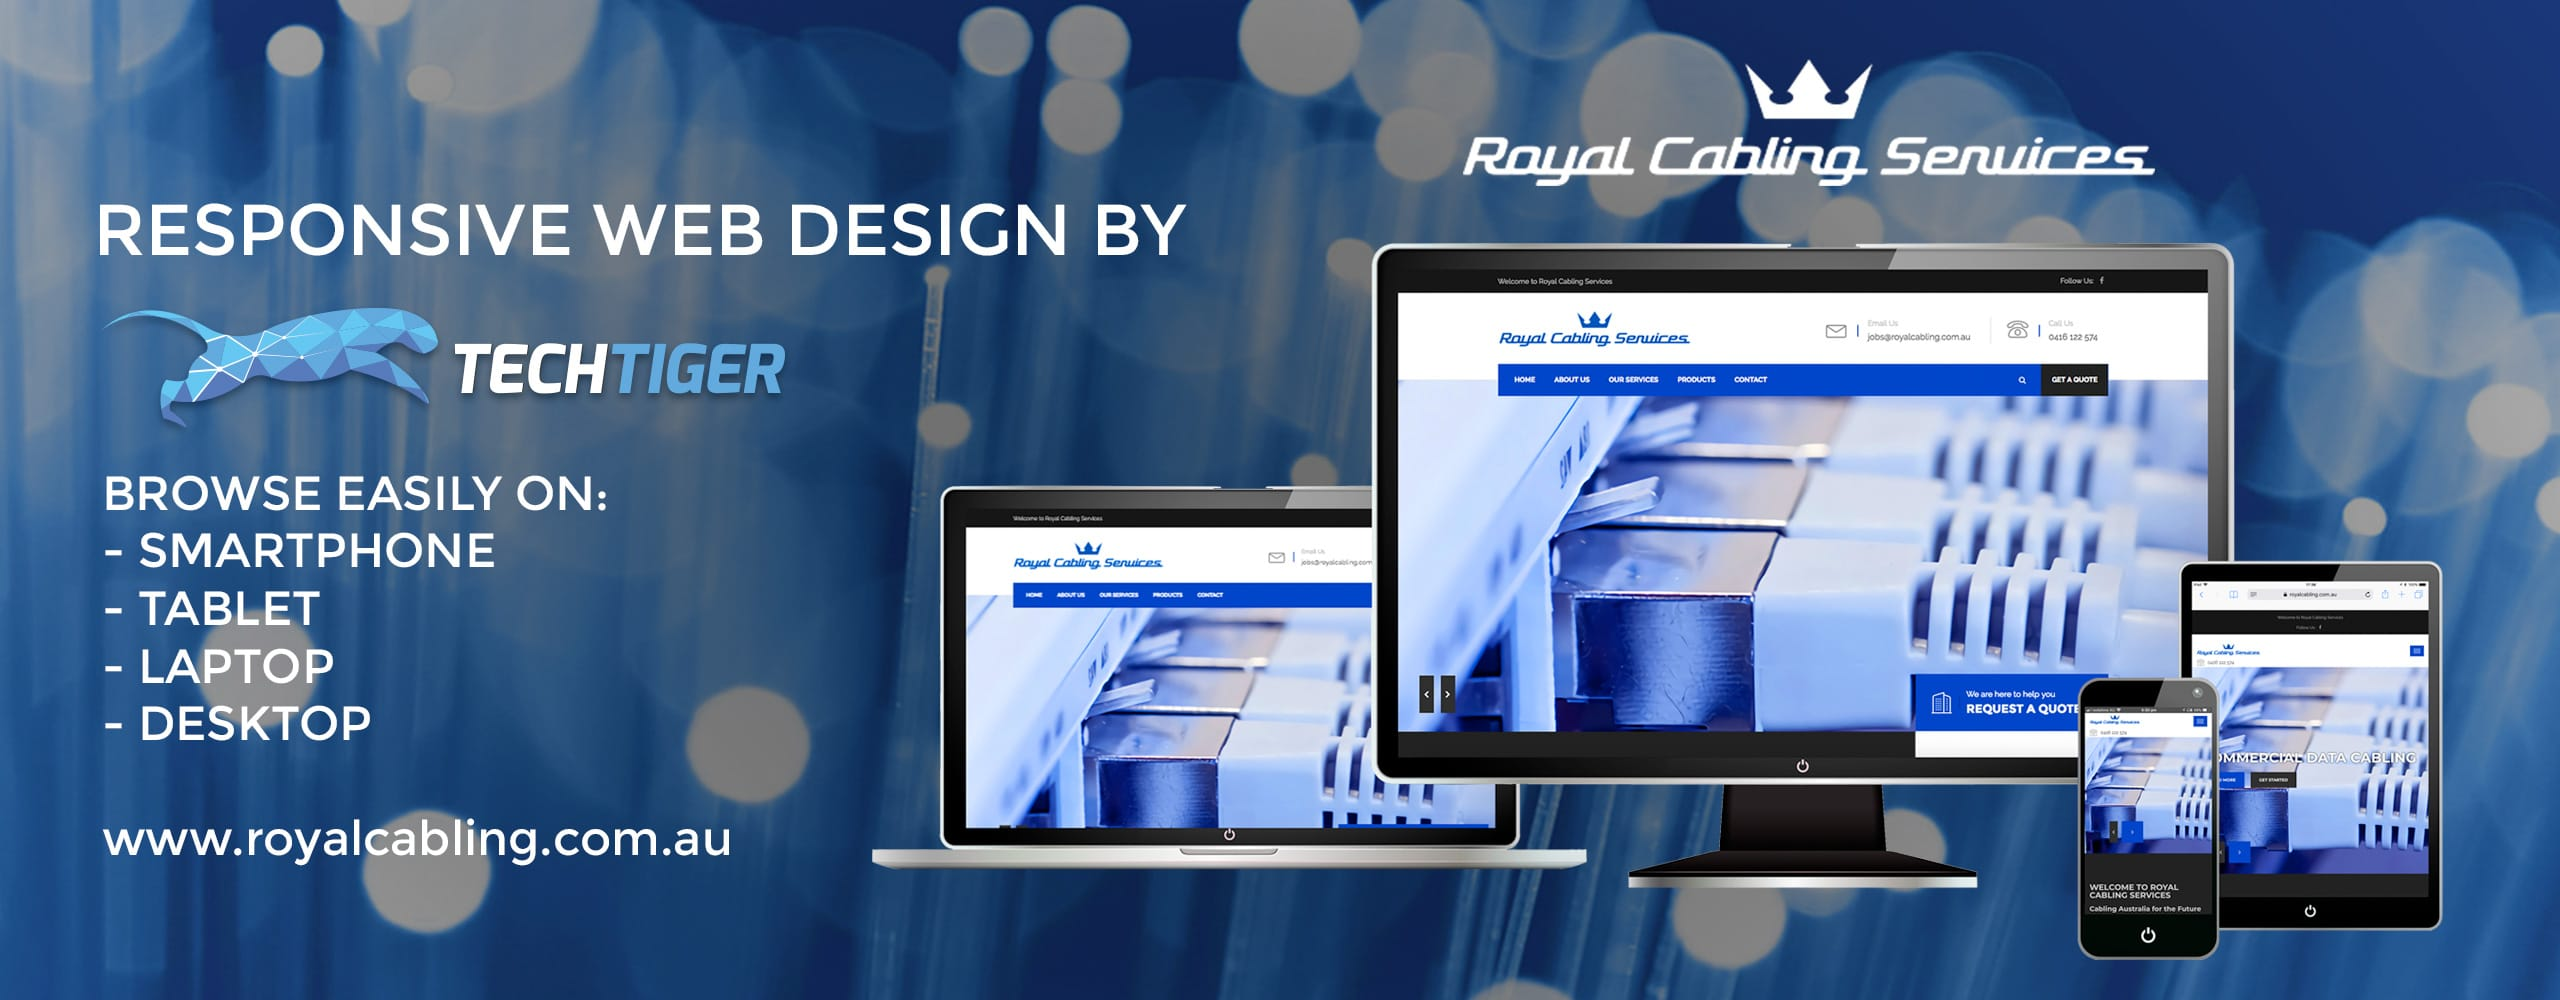 TechTiger: Responsive Web Design for Royal Cabling Services